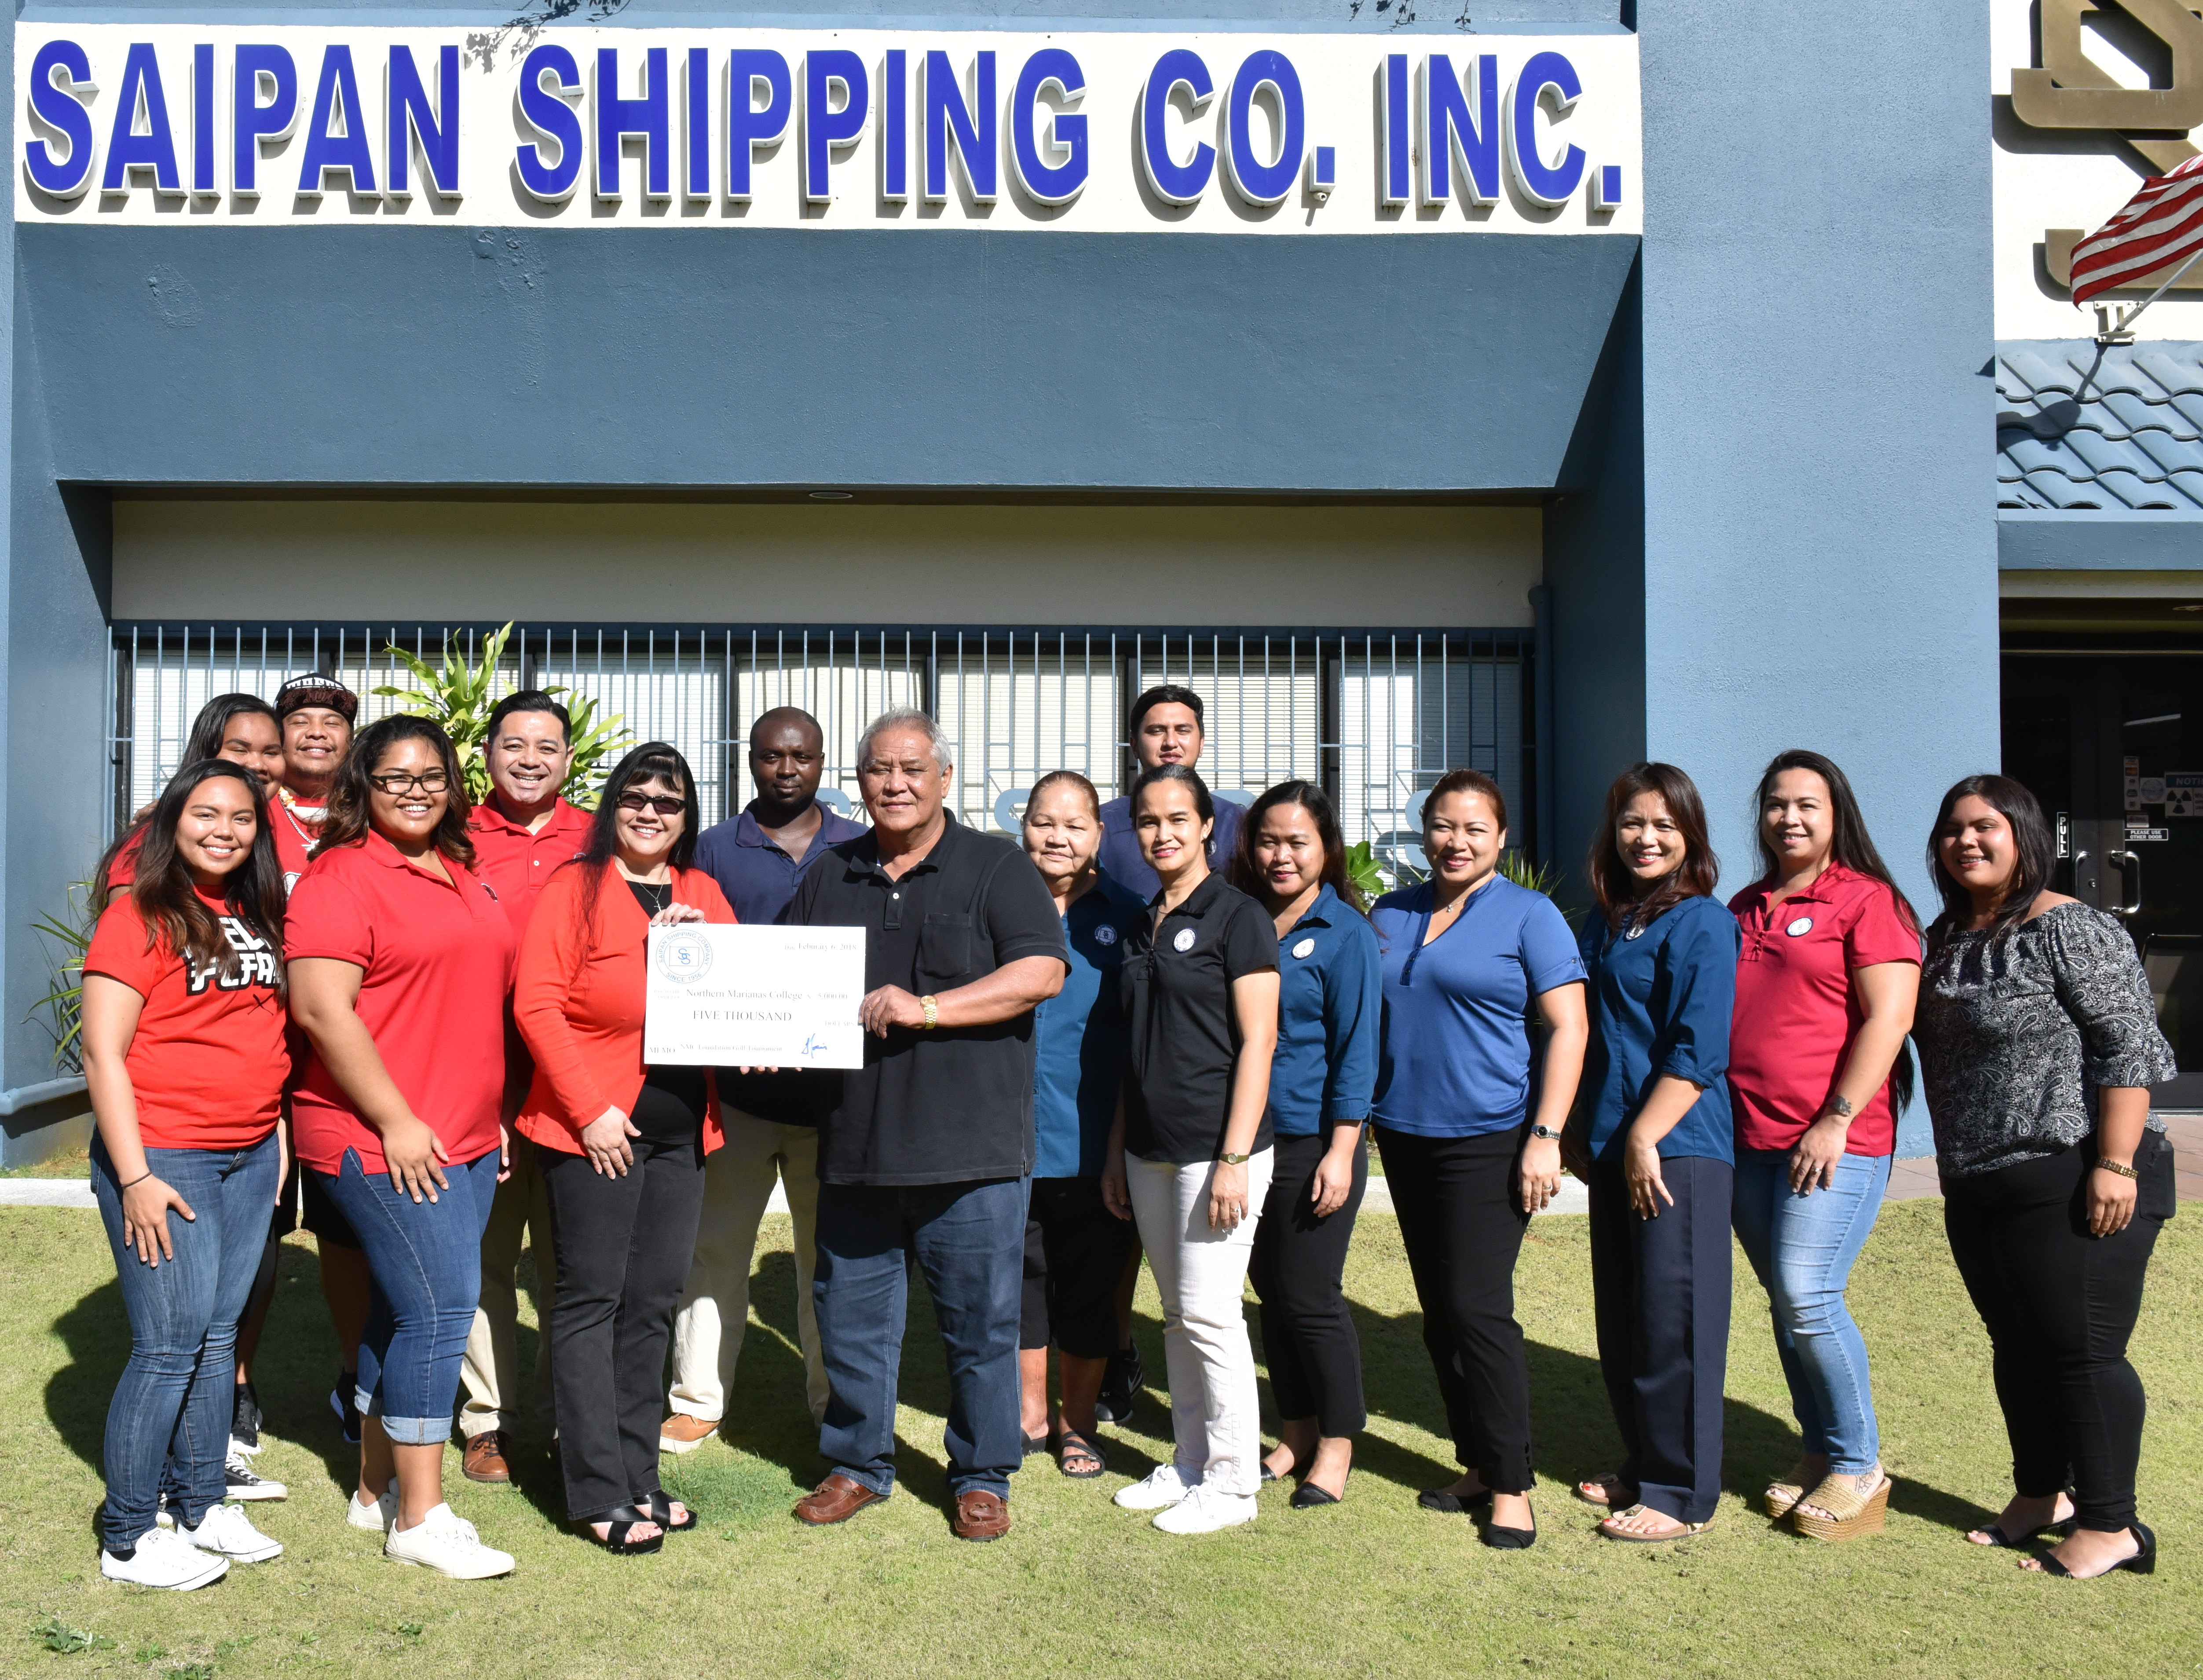 To support higher education in the CNMI, Saipan Shipping Inc. recently made a $5,000 donation to the NMC Foundation.